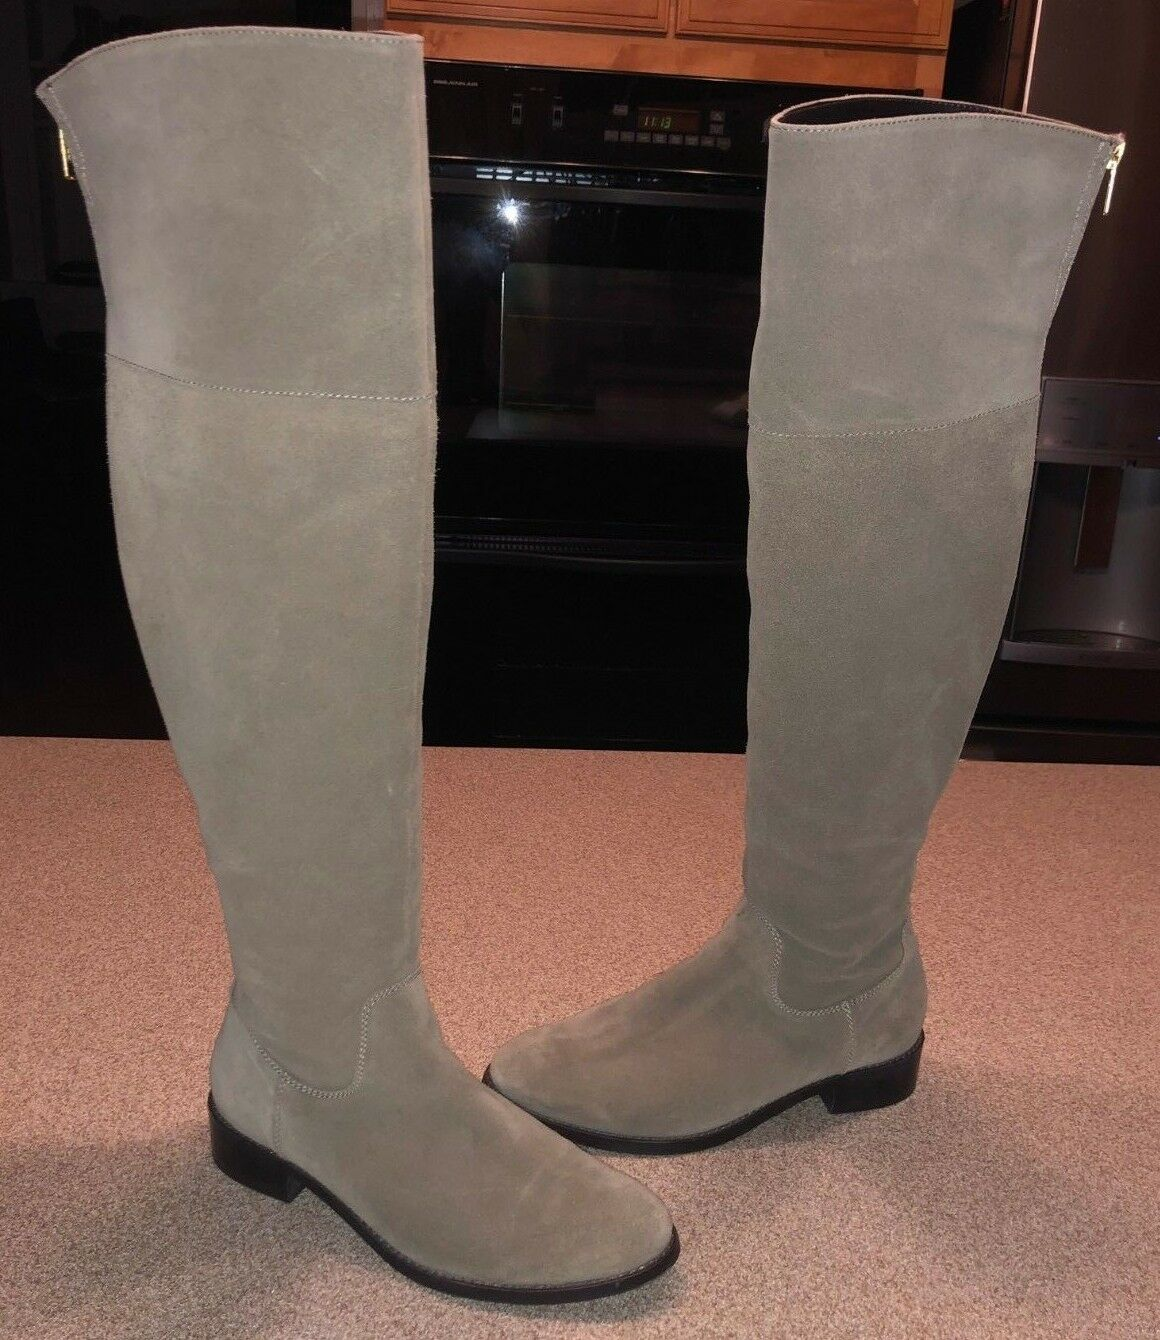 Women's Women's Women's Over-The-Knee Boots Diba True Thumbs Up Taupe Suede Size 7 RP 198 273416